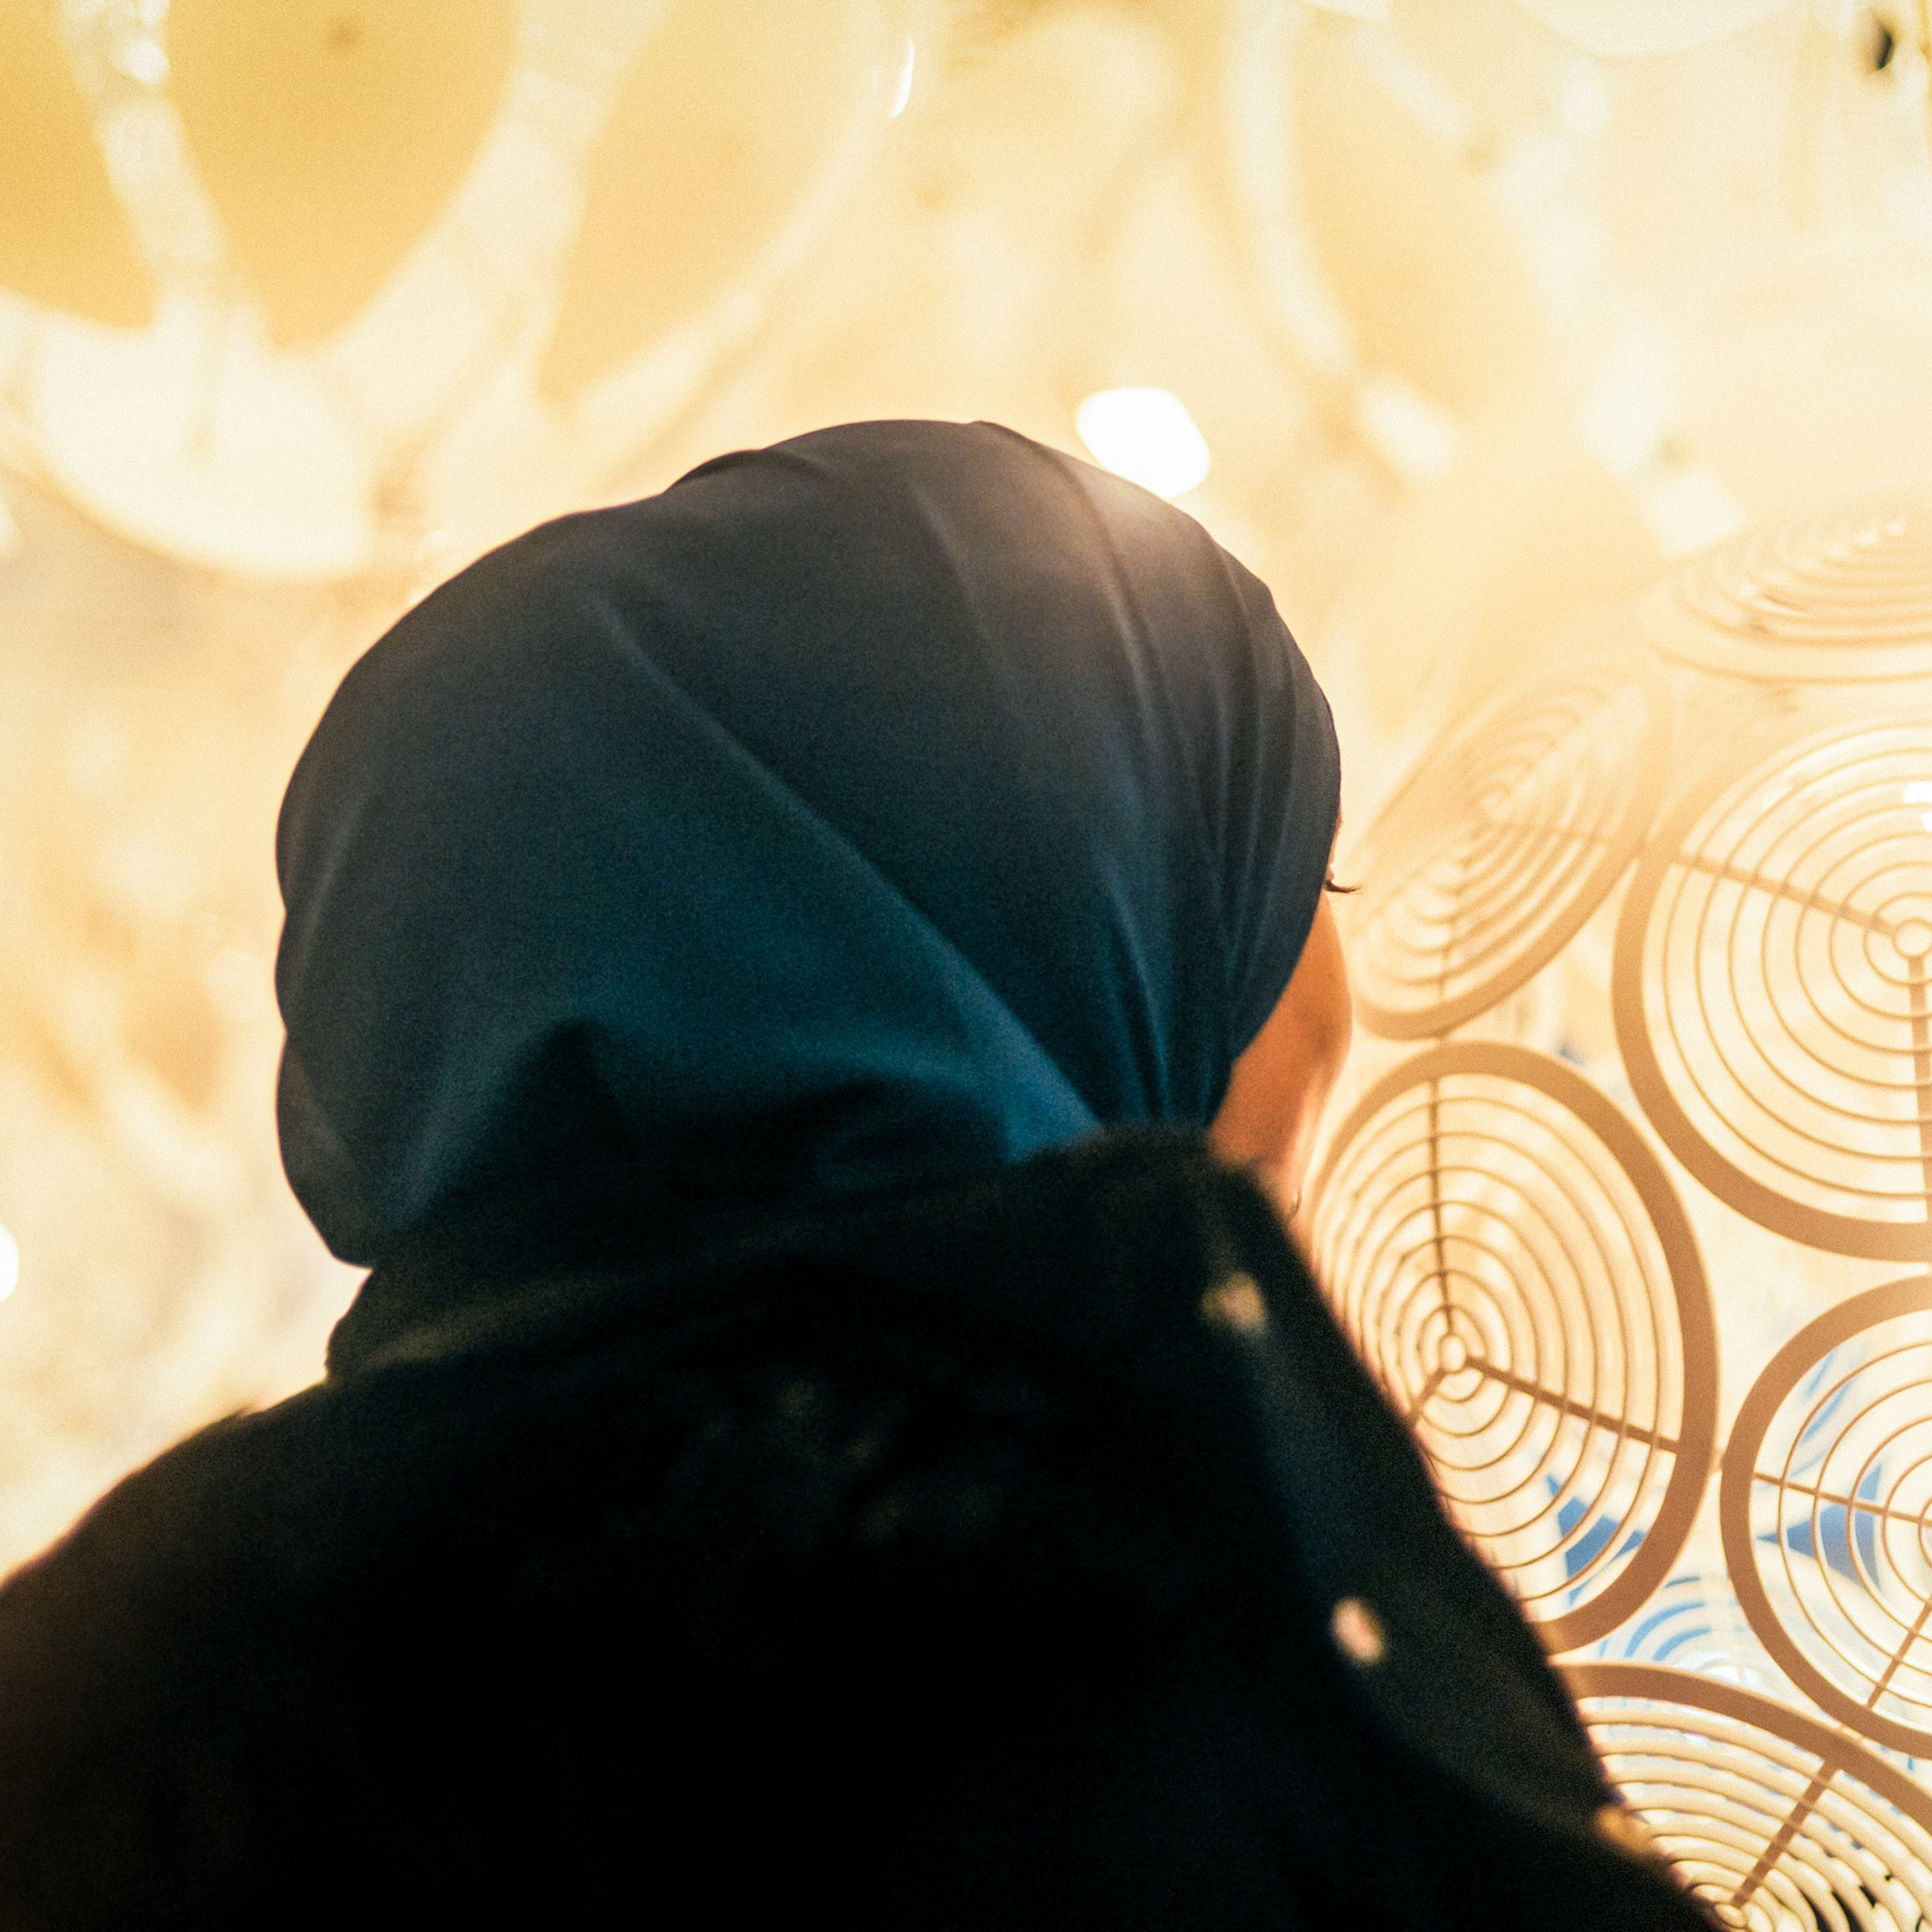 Photograph of a woman wearing a blue head scarf facing away from the camera. The viewpoint is low down looking up at her. In the background is the warm yellow and orange colours of patterned lamp shades in a shop display.